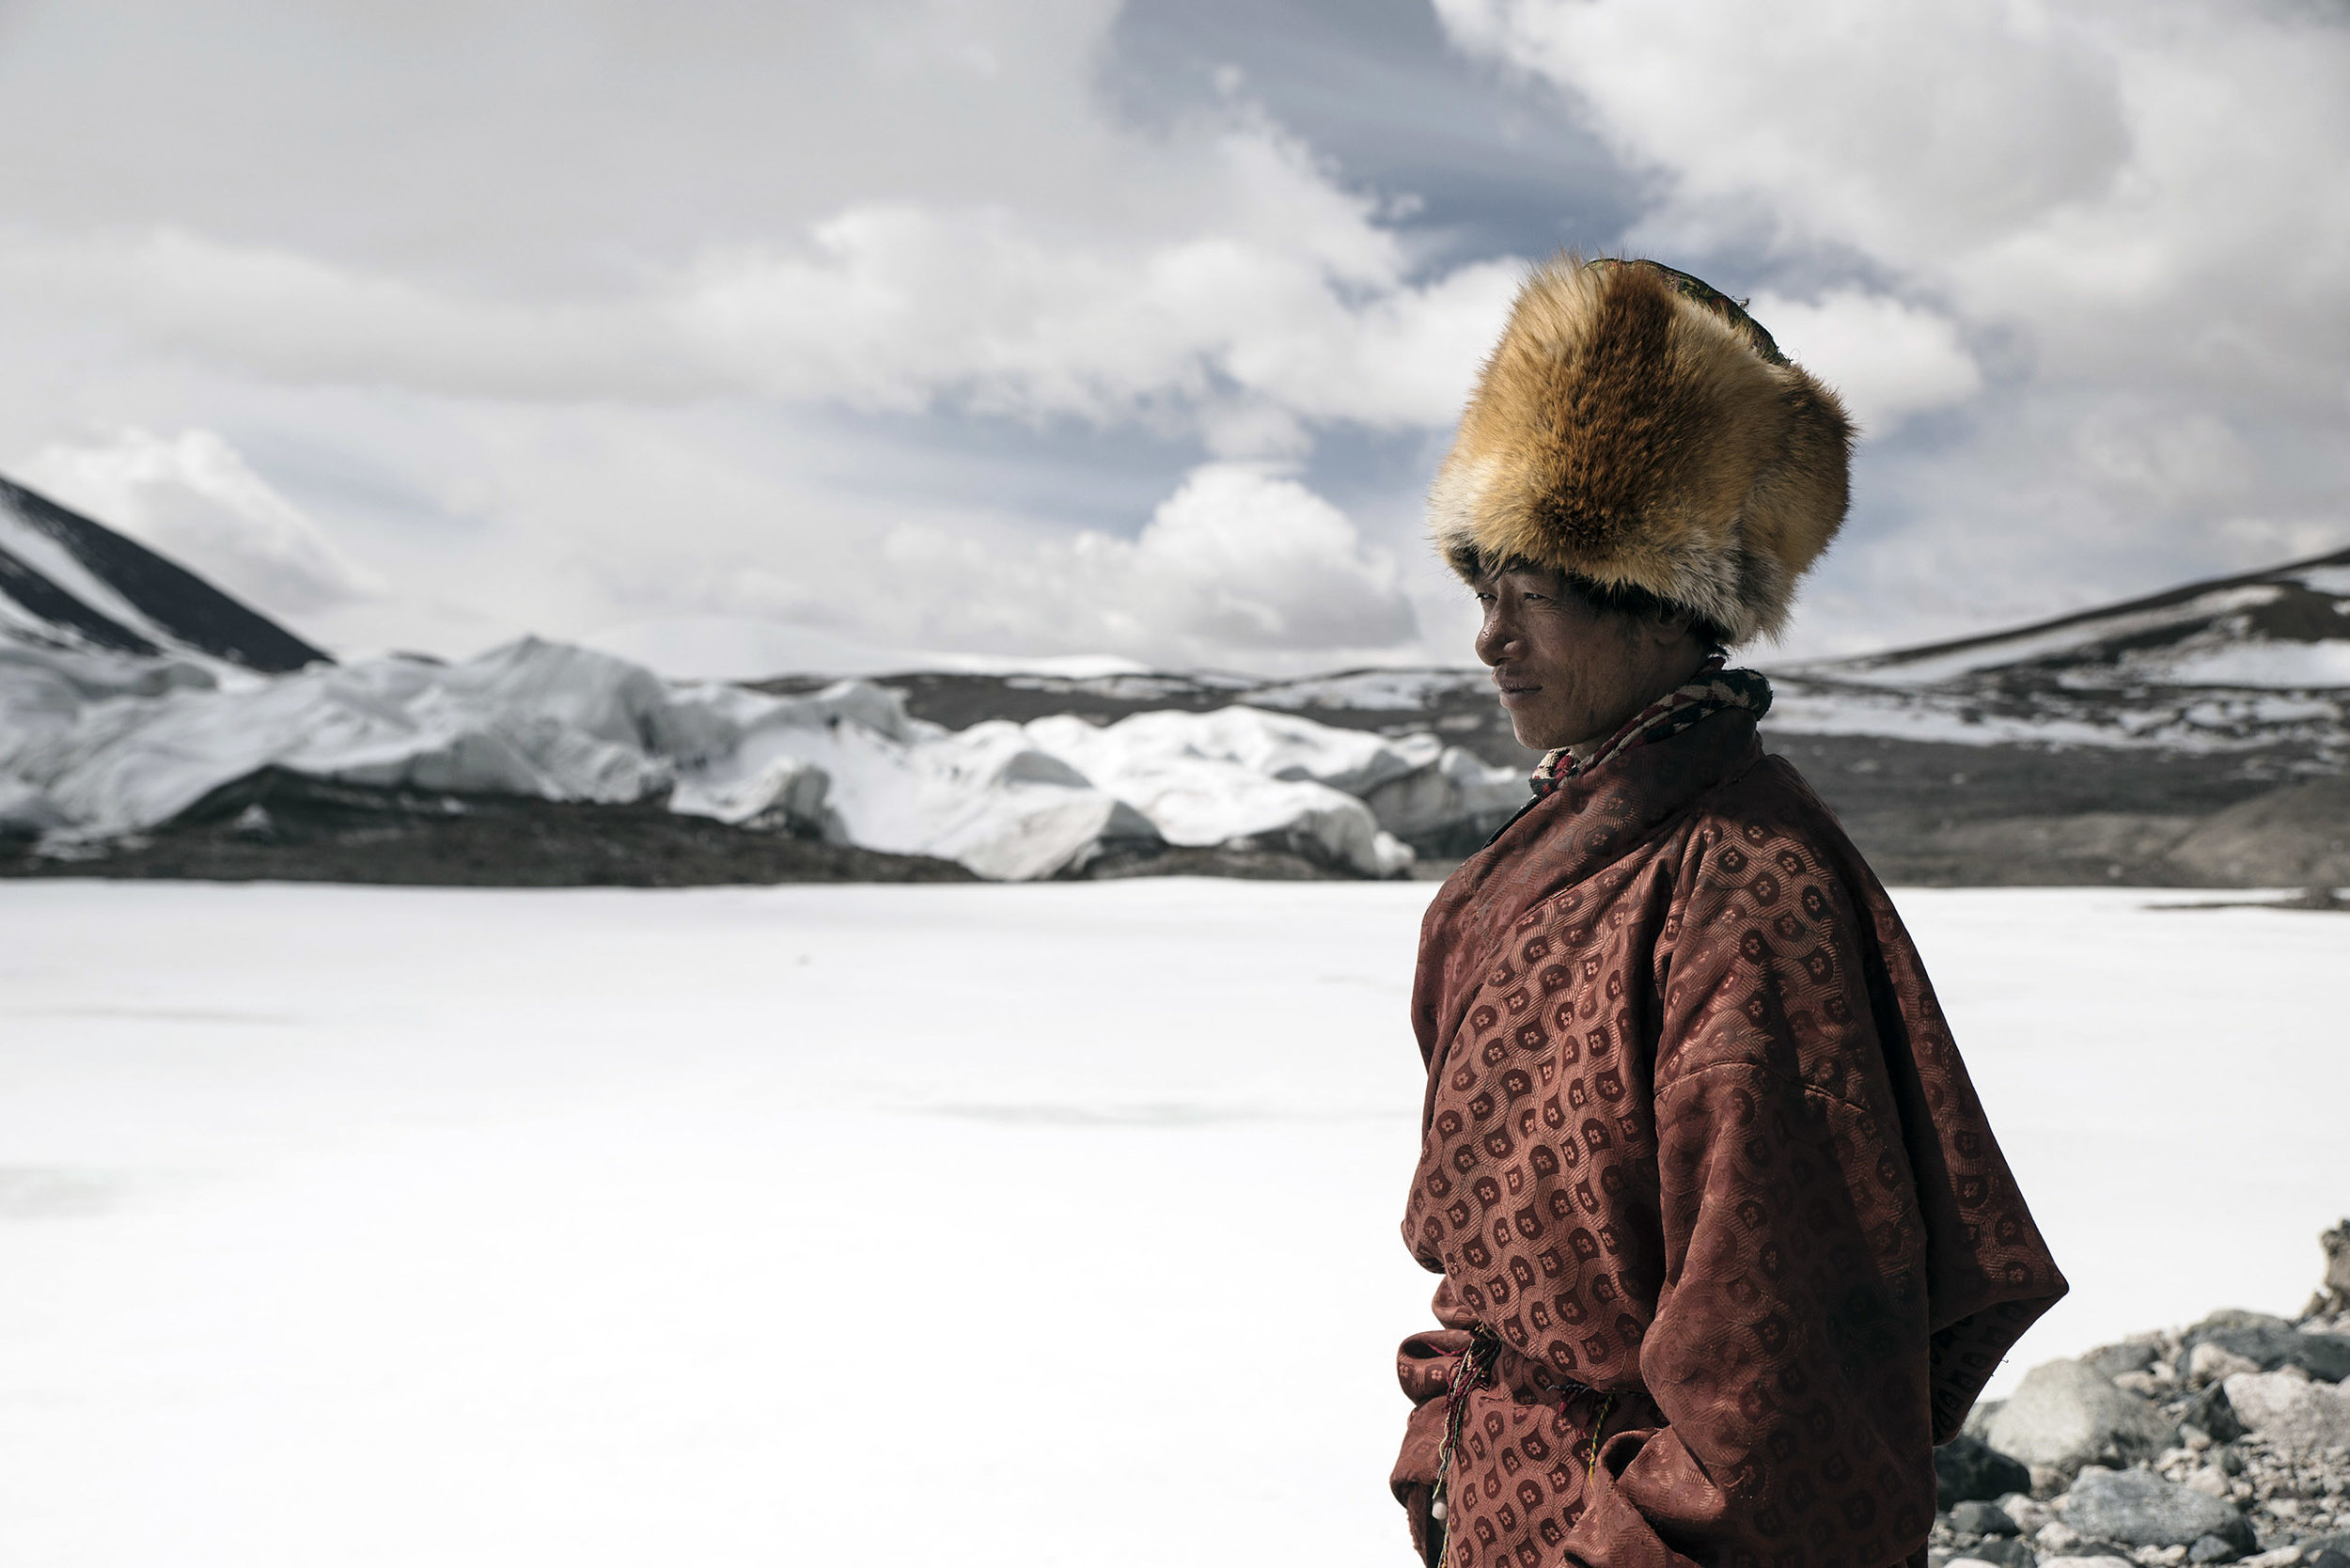 A nomad wearing a hat made of fox fur, at the sources of the Yangtze river where he and his family live year around which was impossible just a few years ago. Rising temperatures and receding glaciers allow yaks to graze in the area.